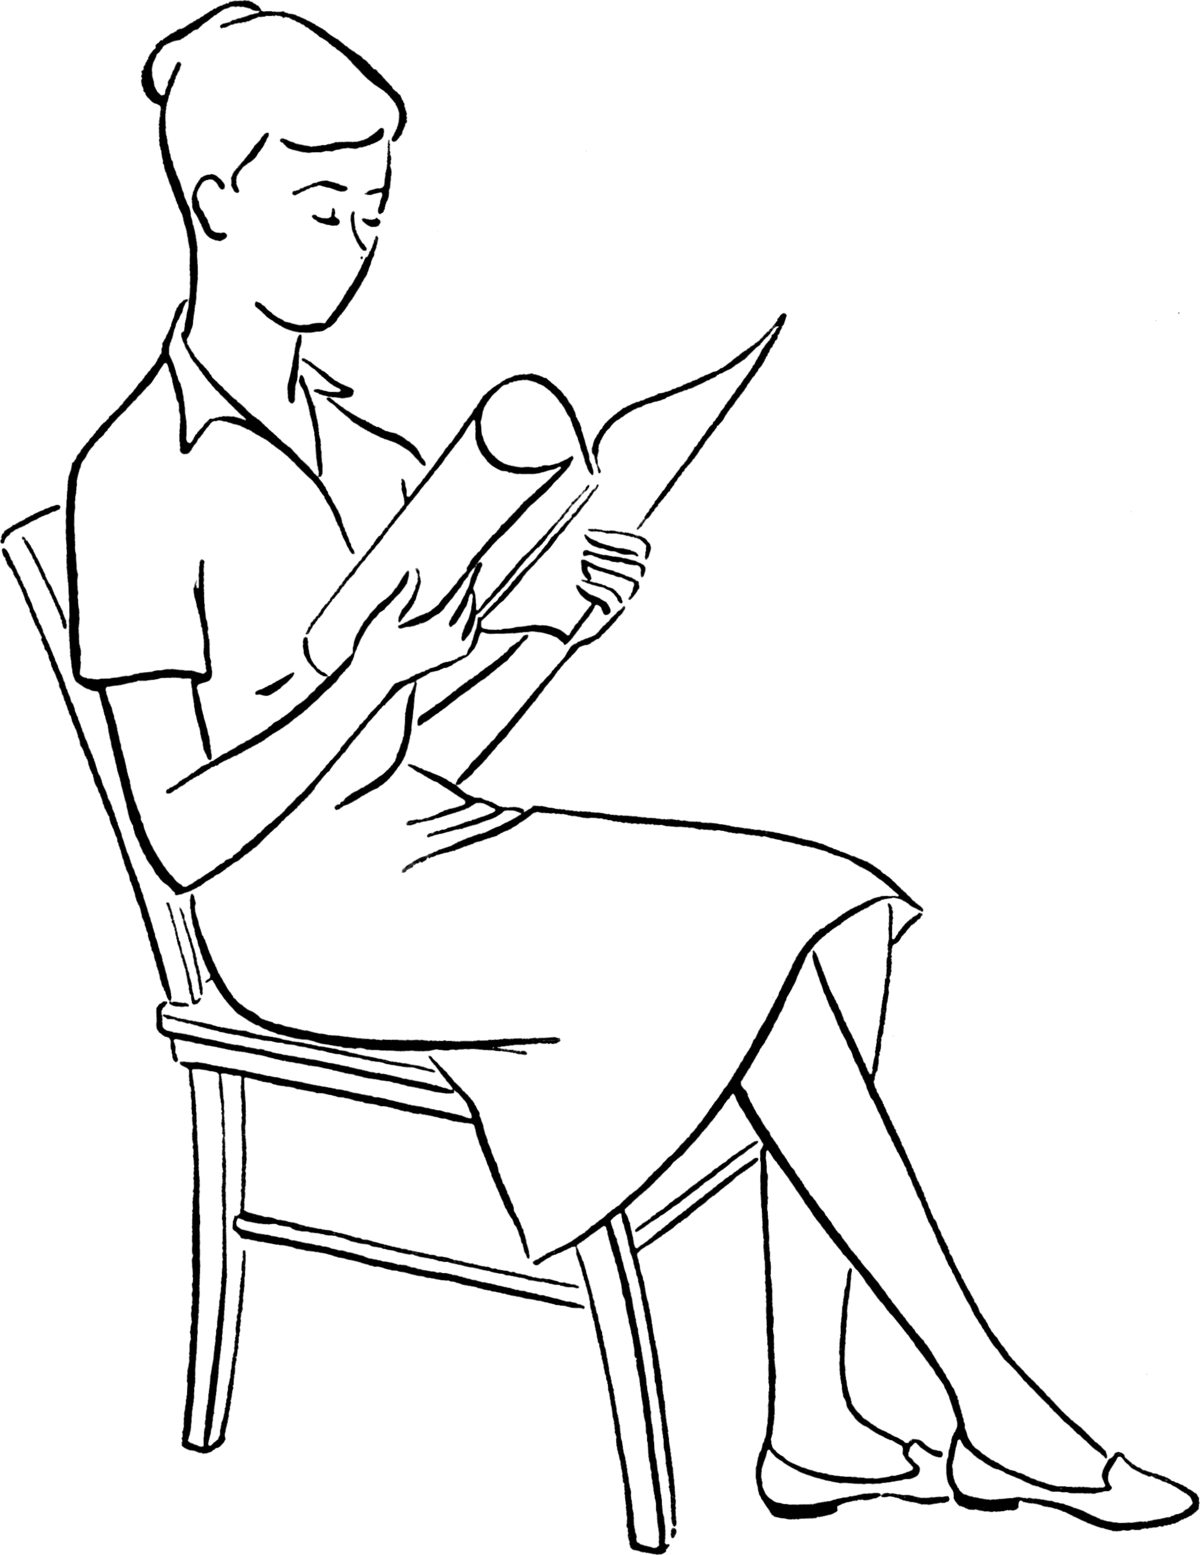 Eames Chair Drawing Eames Chair Technical Drawing Wire Chair Dkr